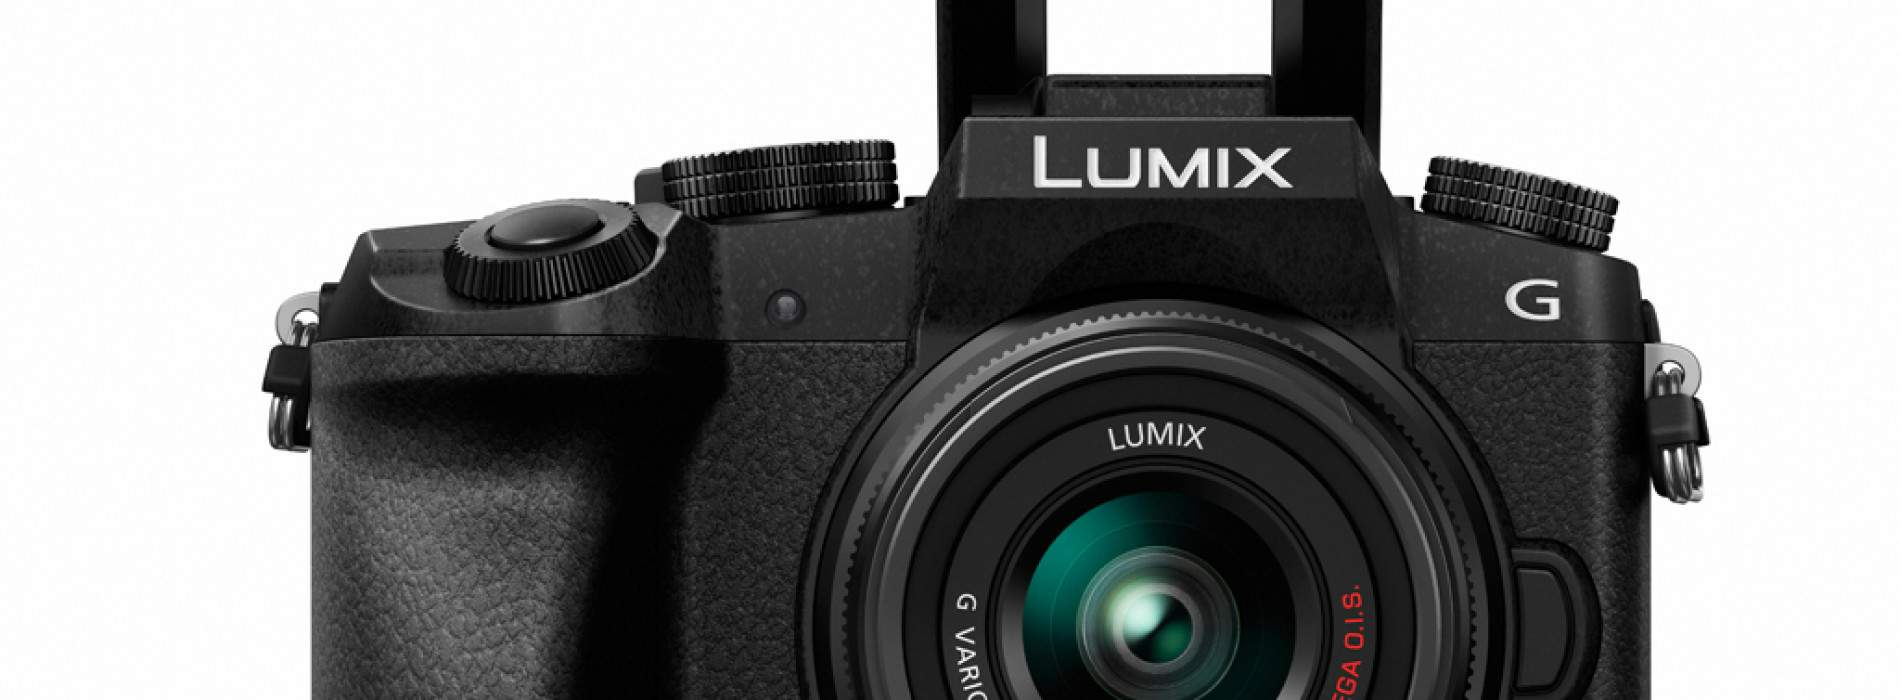 Lumix G7: Vídeo y fotografía en Ultra HD